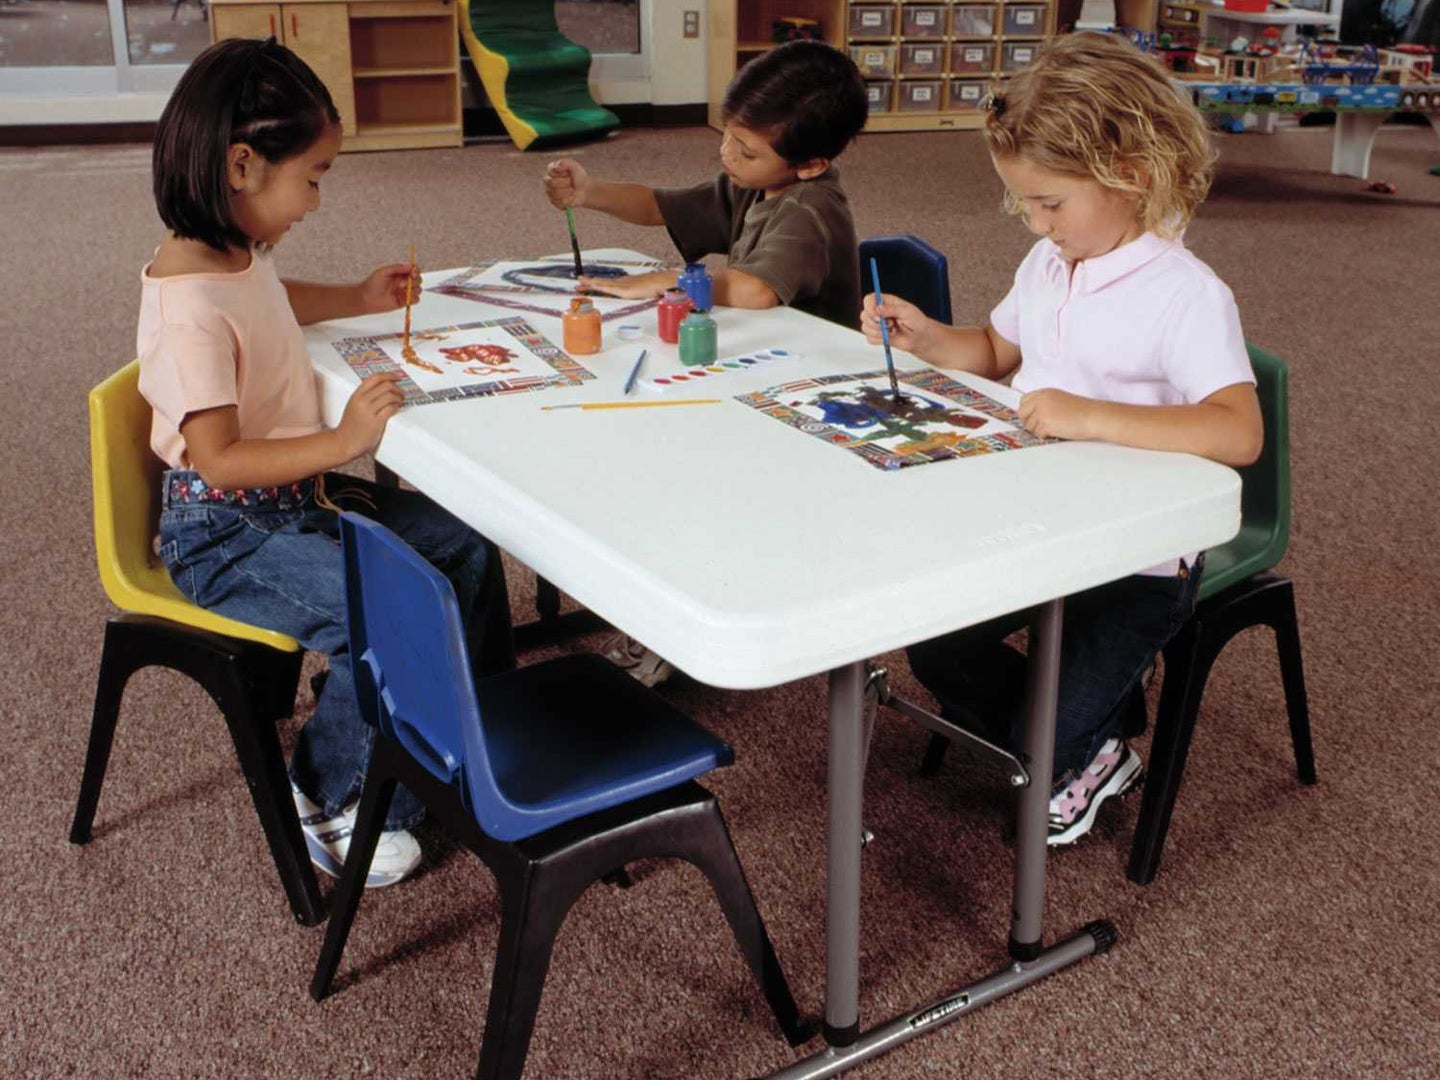 Kids sitting at a portable table